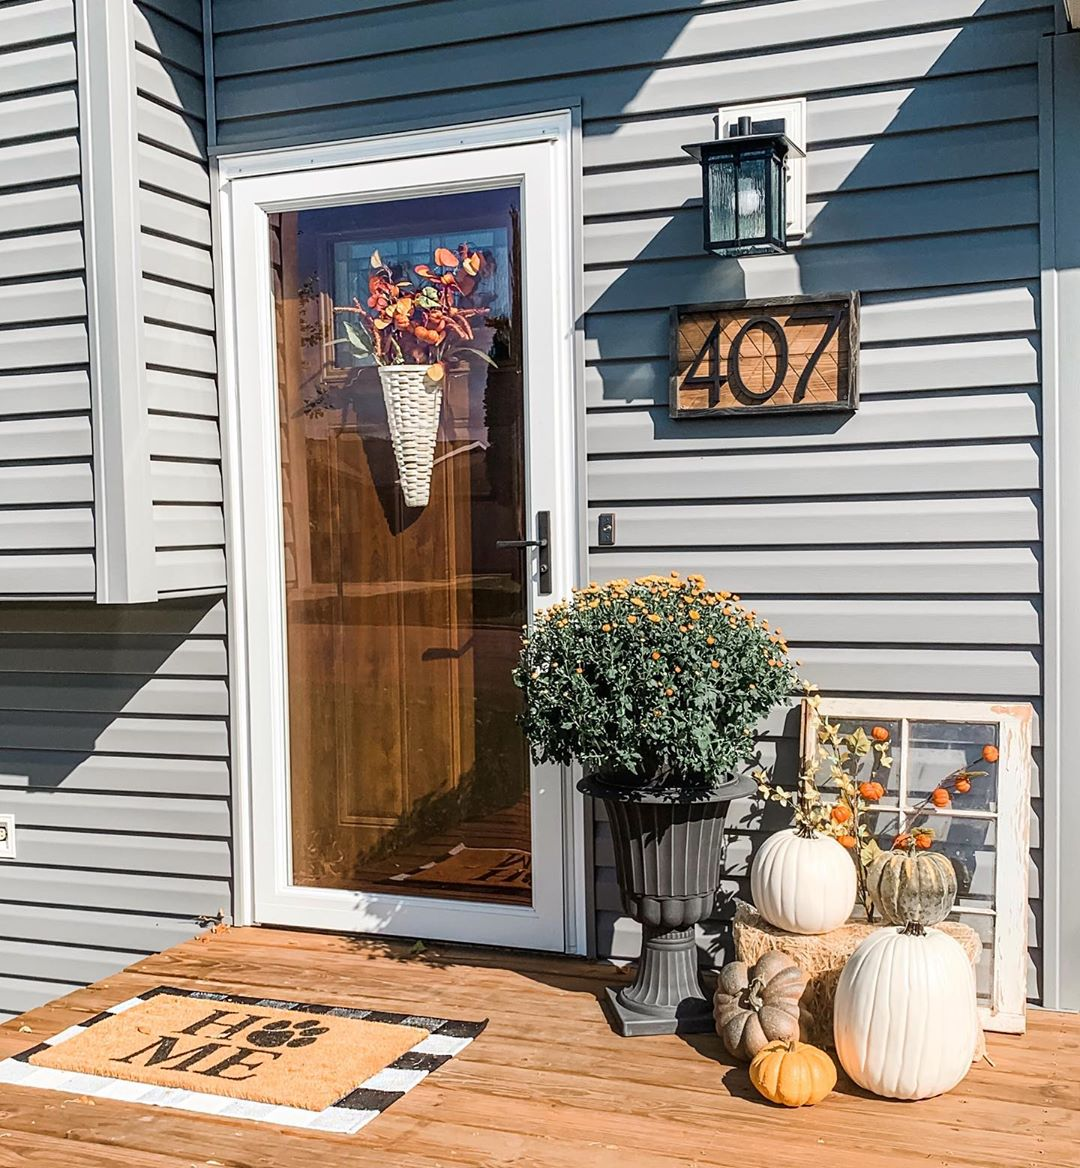 1569404388 990 front porch decor ideas to welcome fall with - Front Porch Decor Ideas To Welcome Fall With